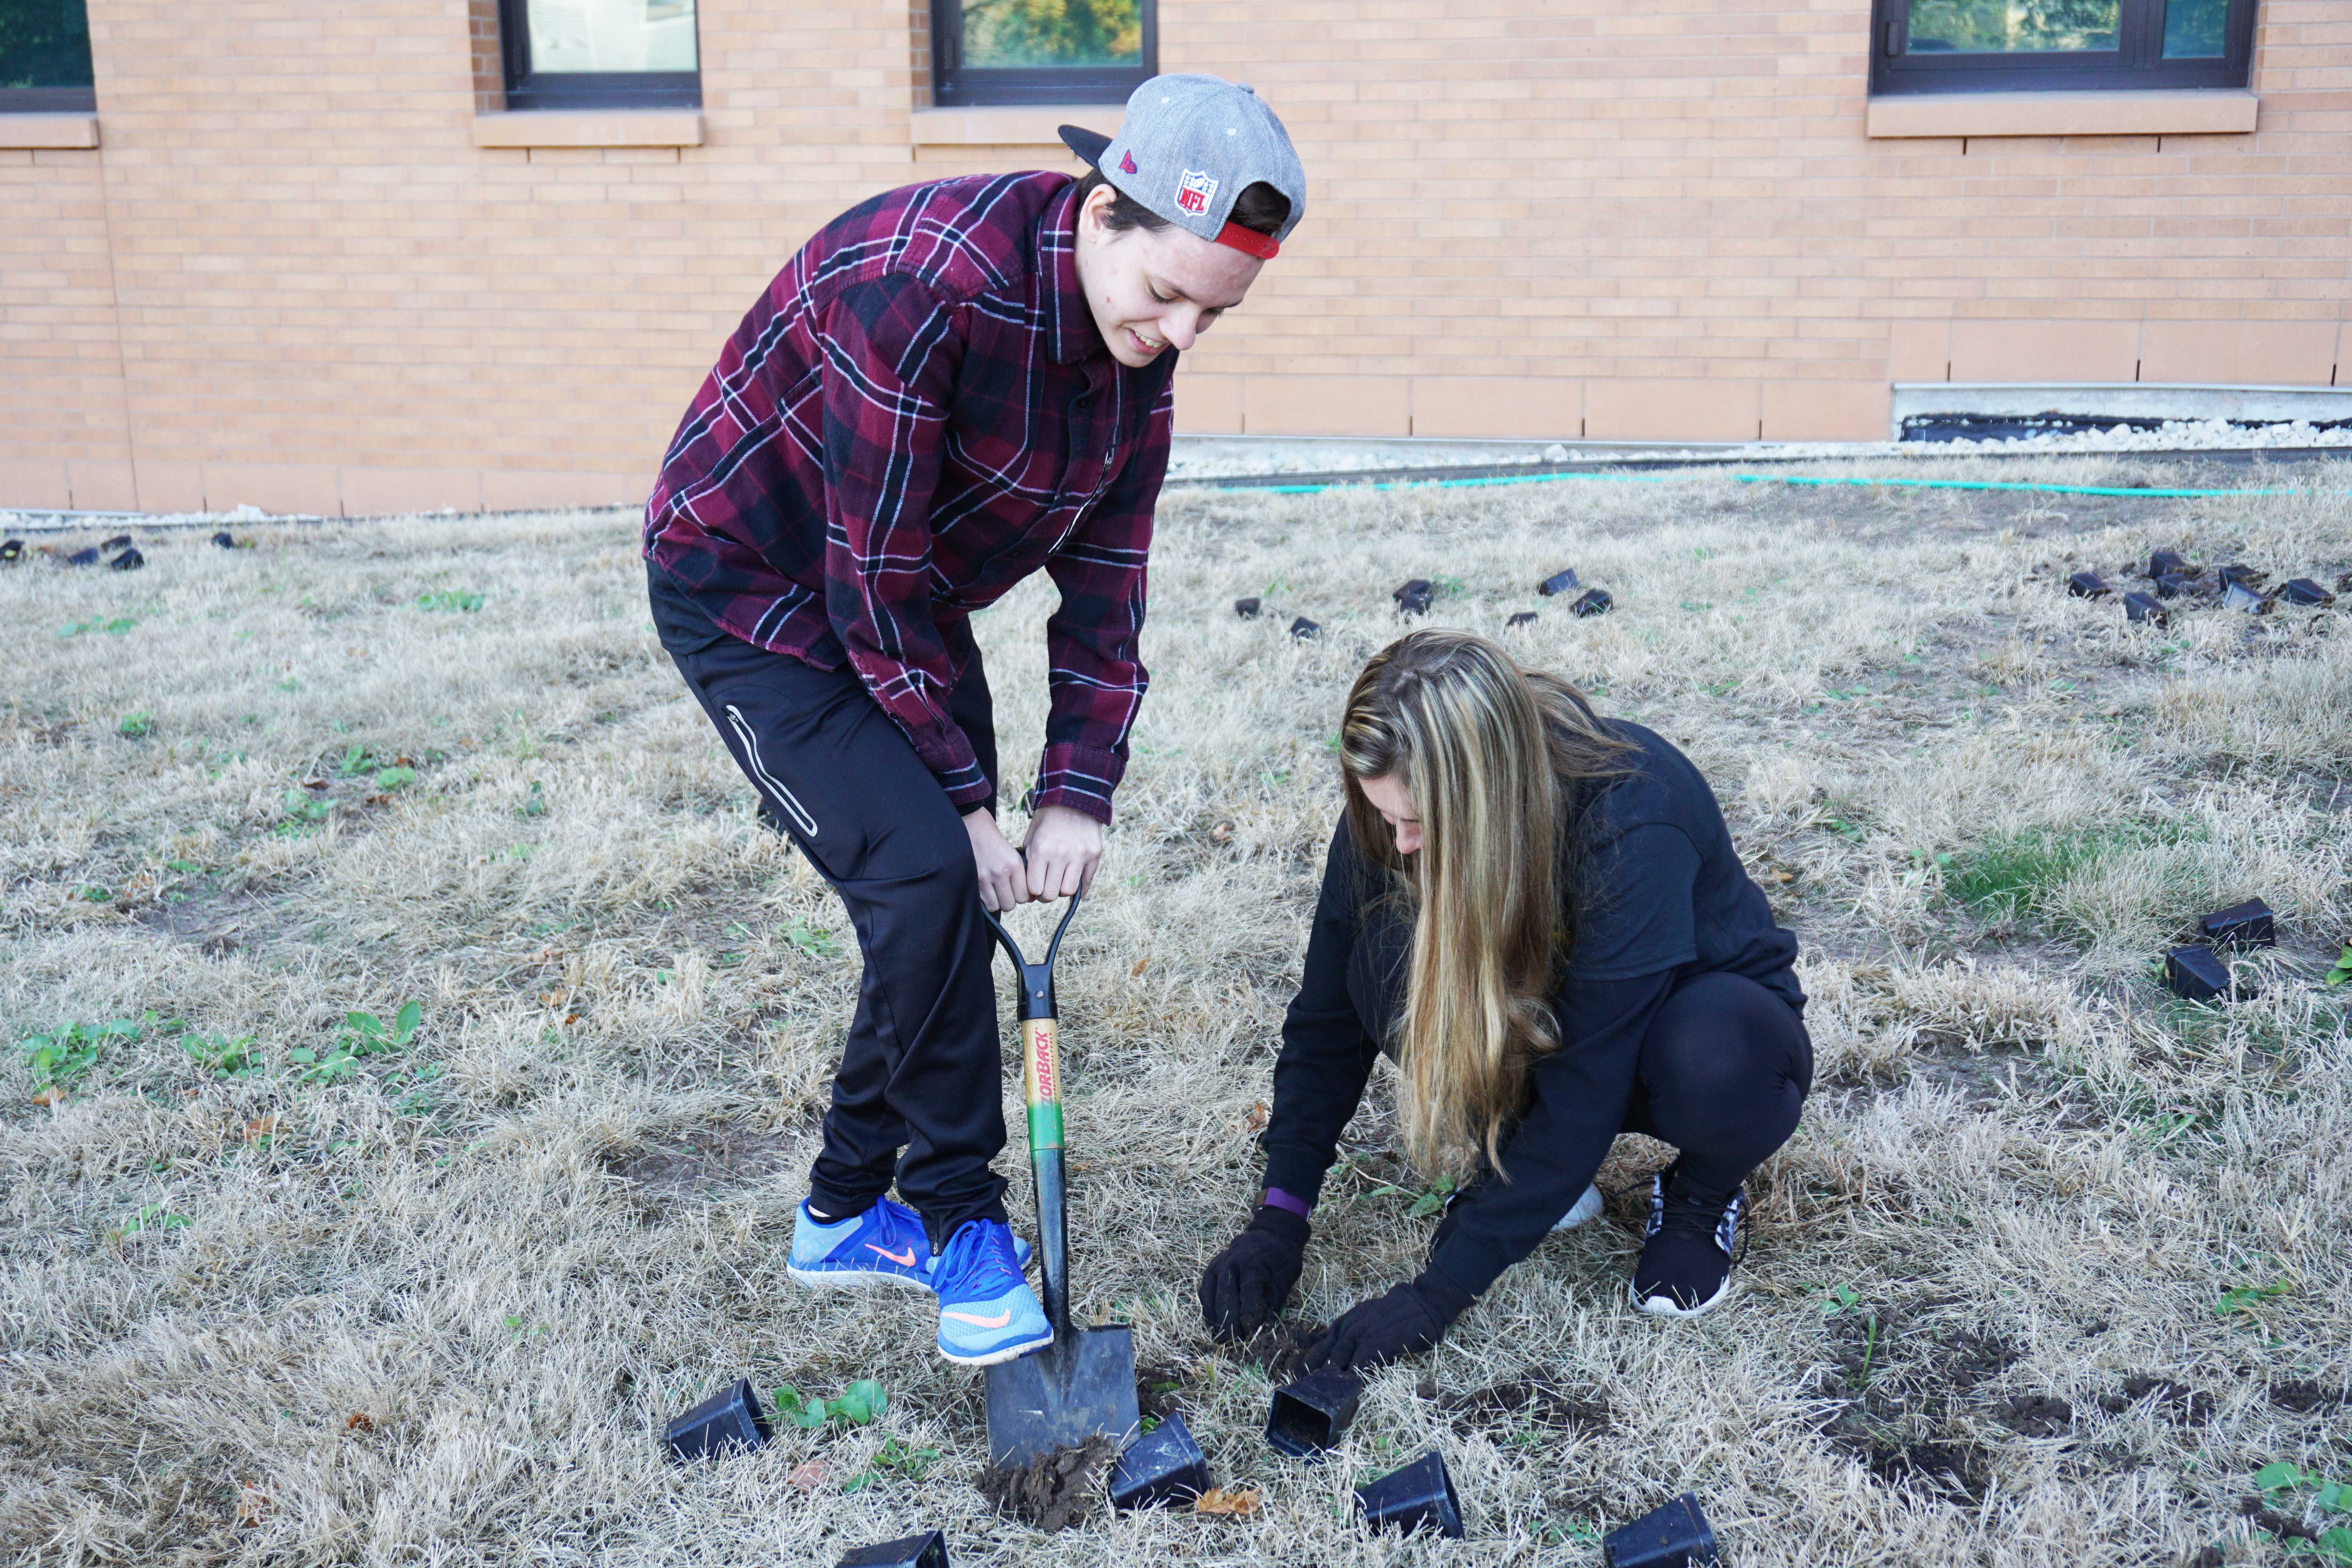 Students volunteer in community as part of semiannual Hands on Oshkosh event